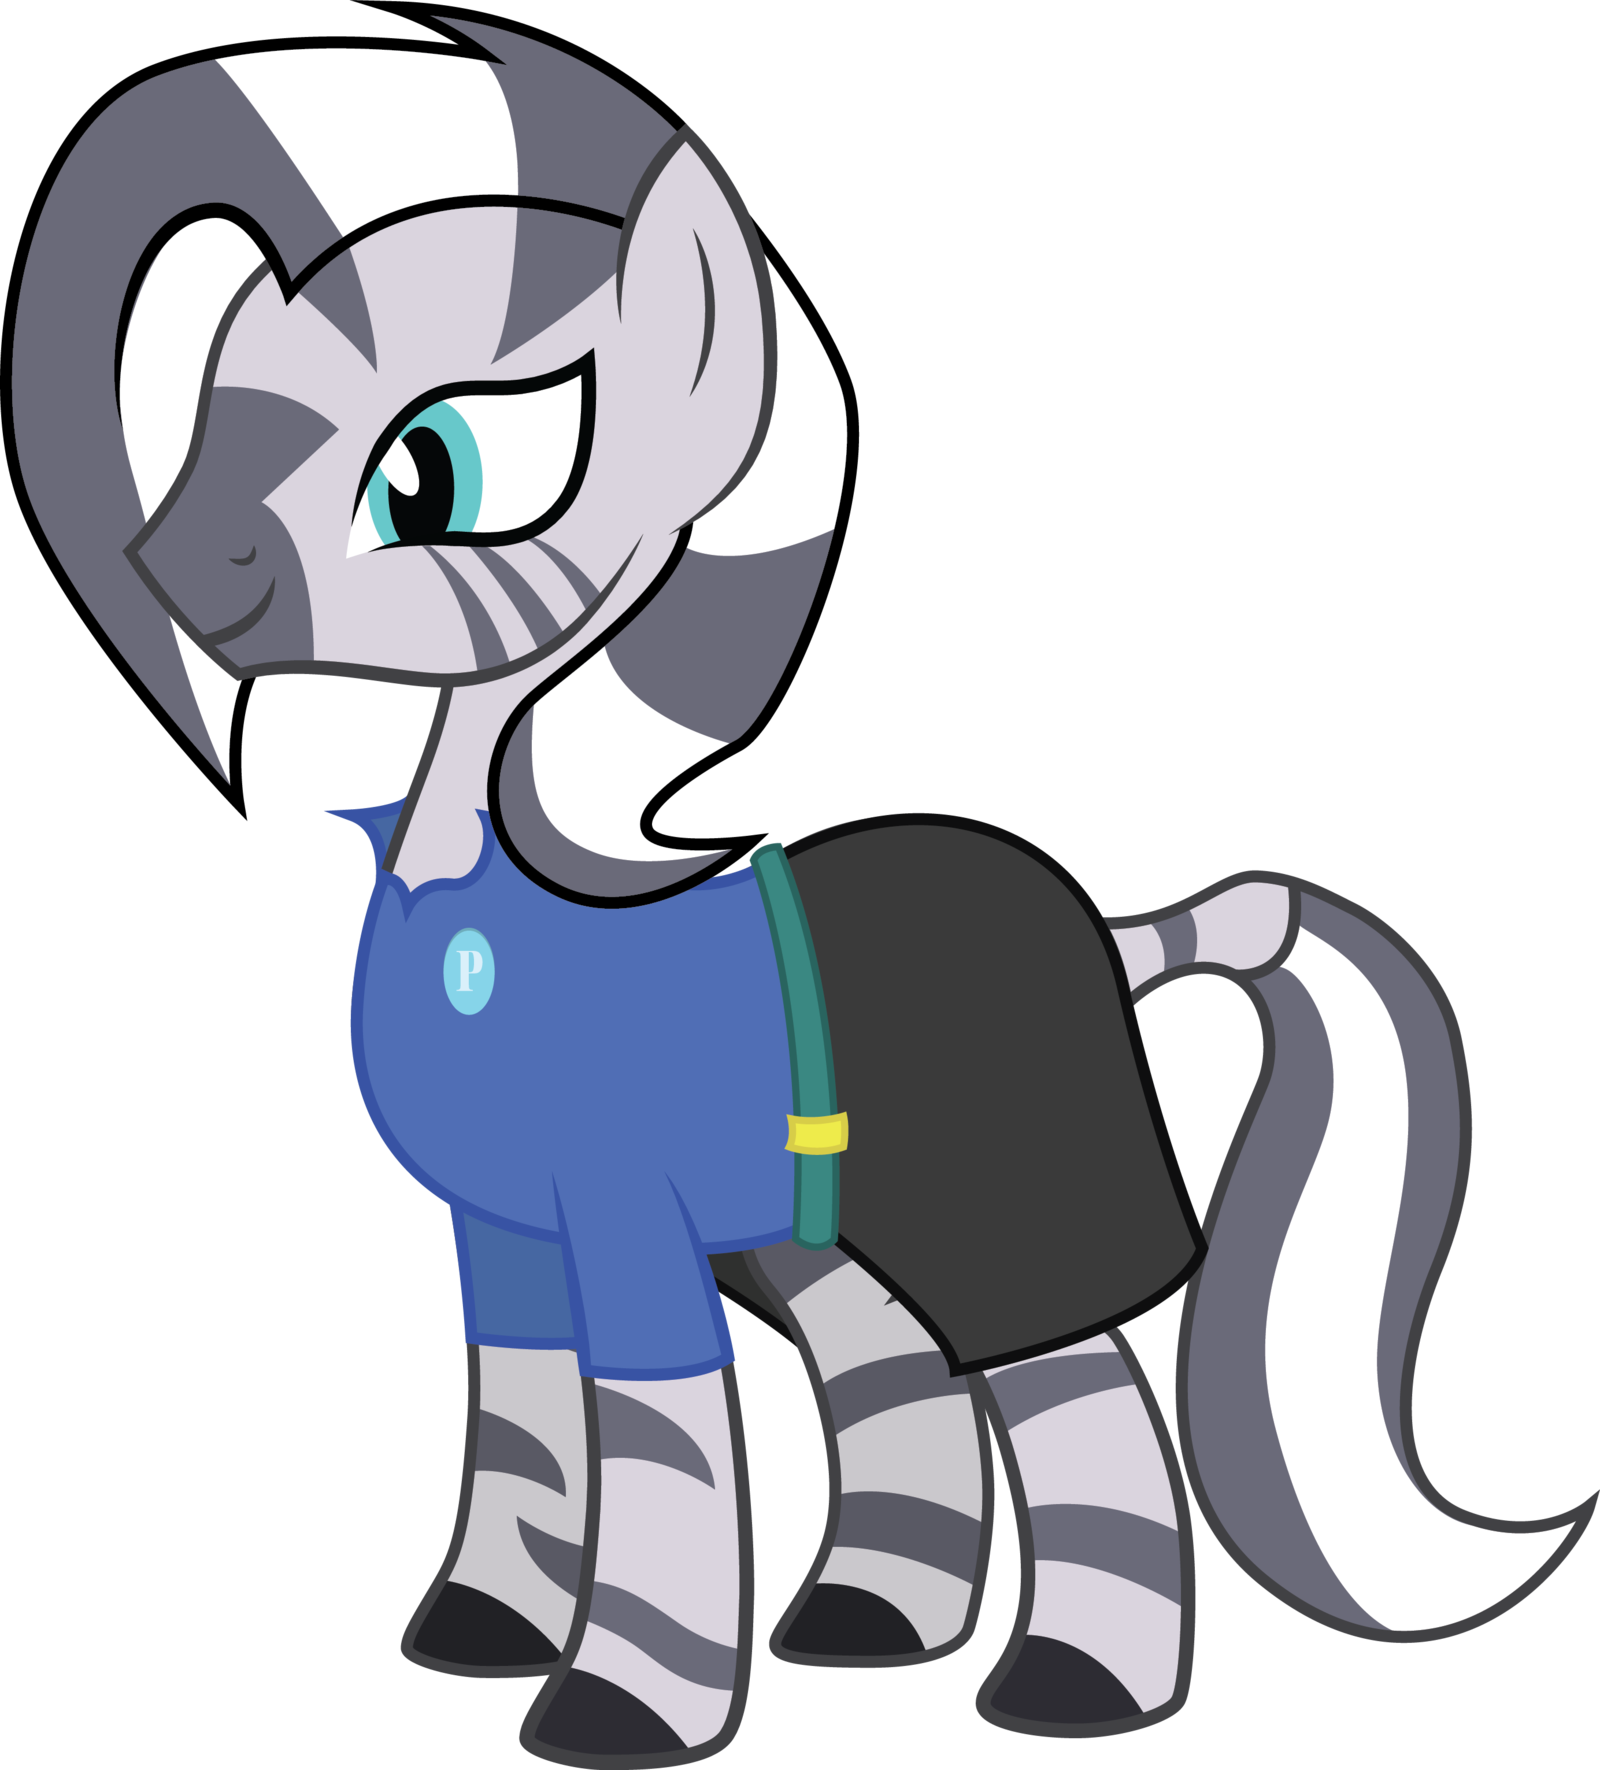 Clipart zebra cartoon female. Zuri by duskthebatpack on